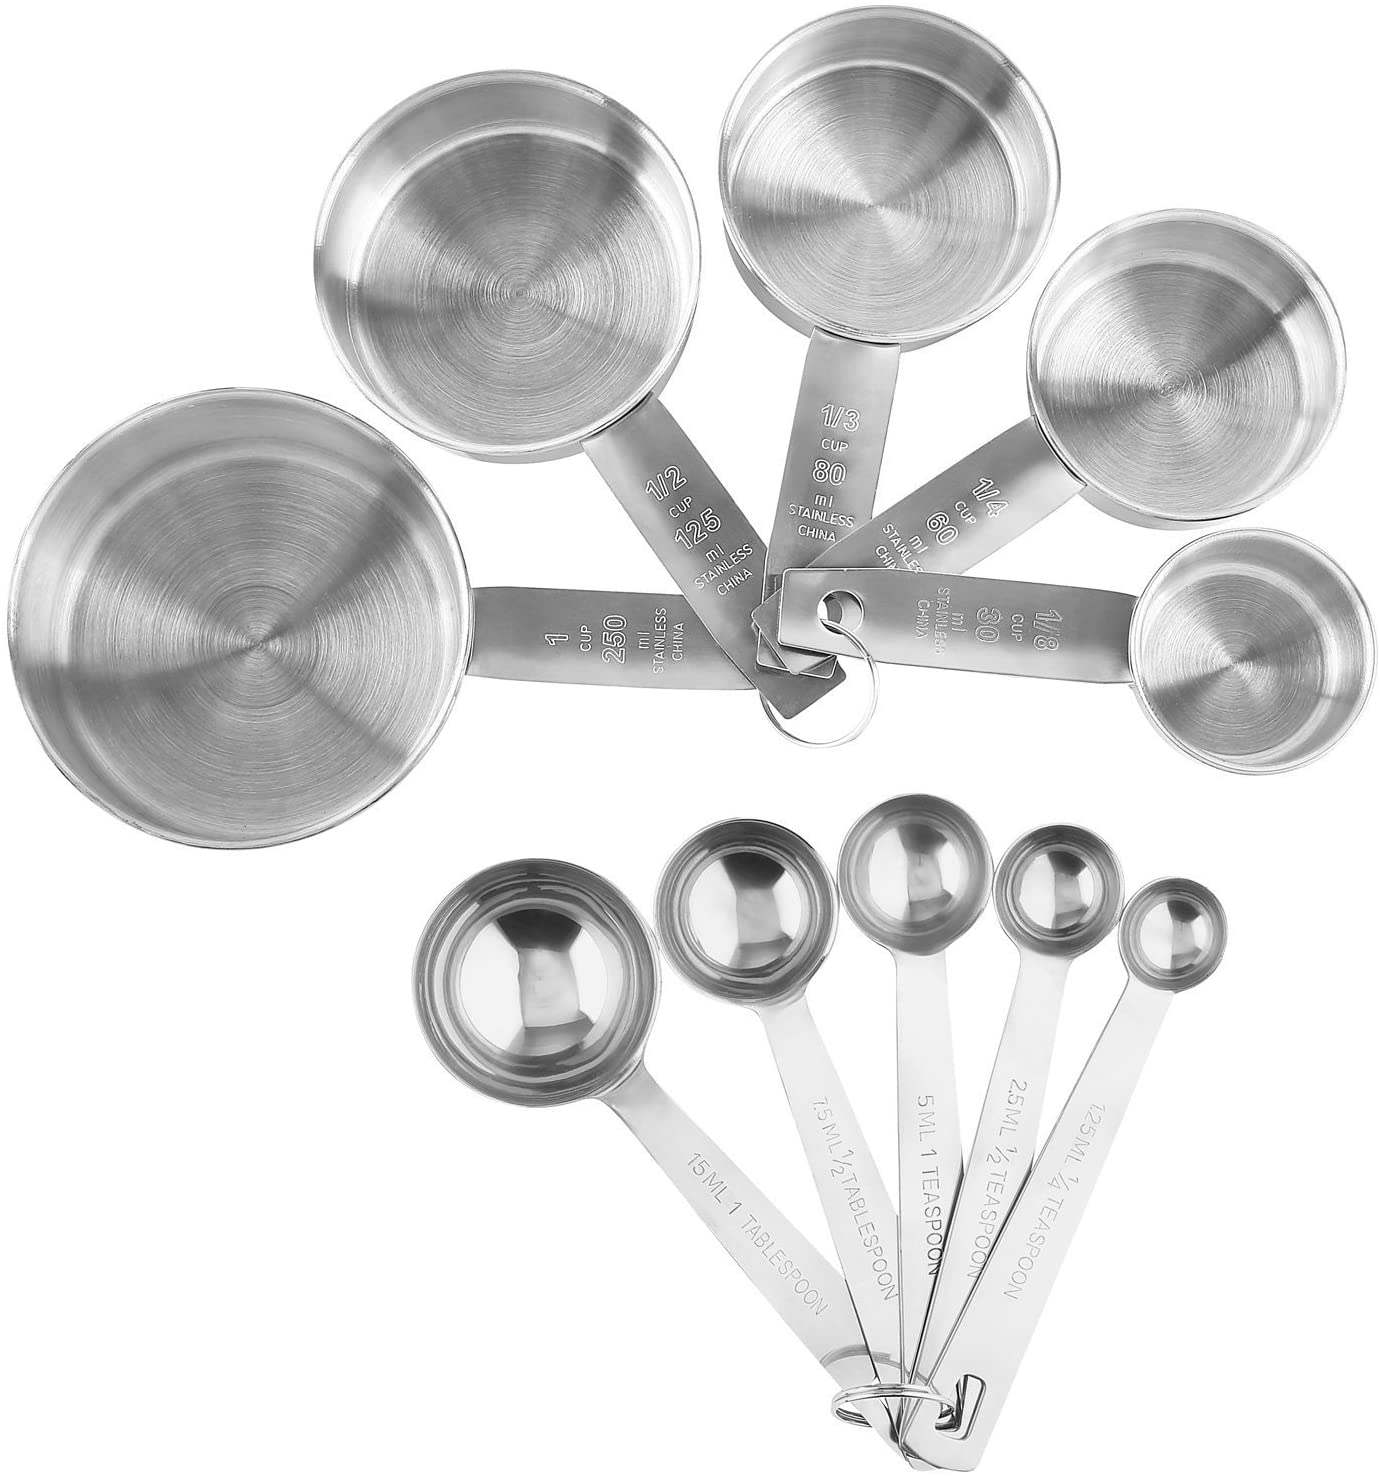 Stainless Steel Measuring Cups And Spoons Set Engraved Measurements Measuring Cup Spoon